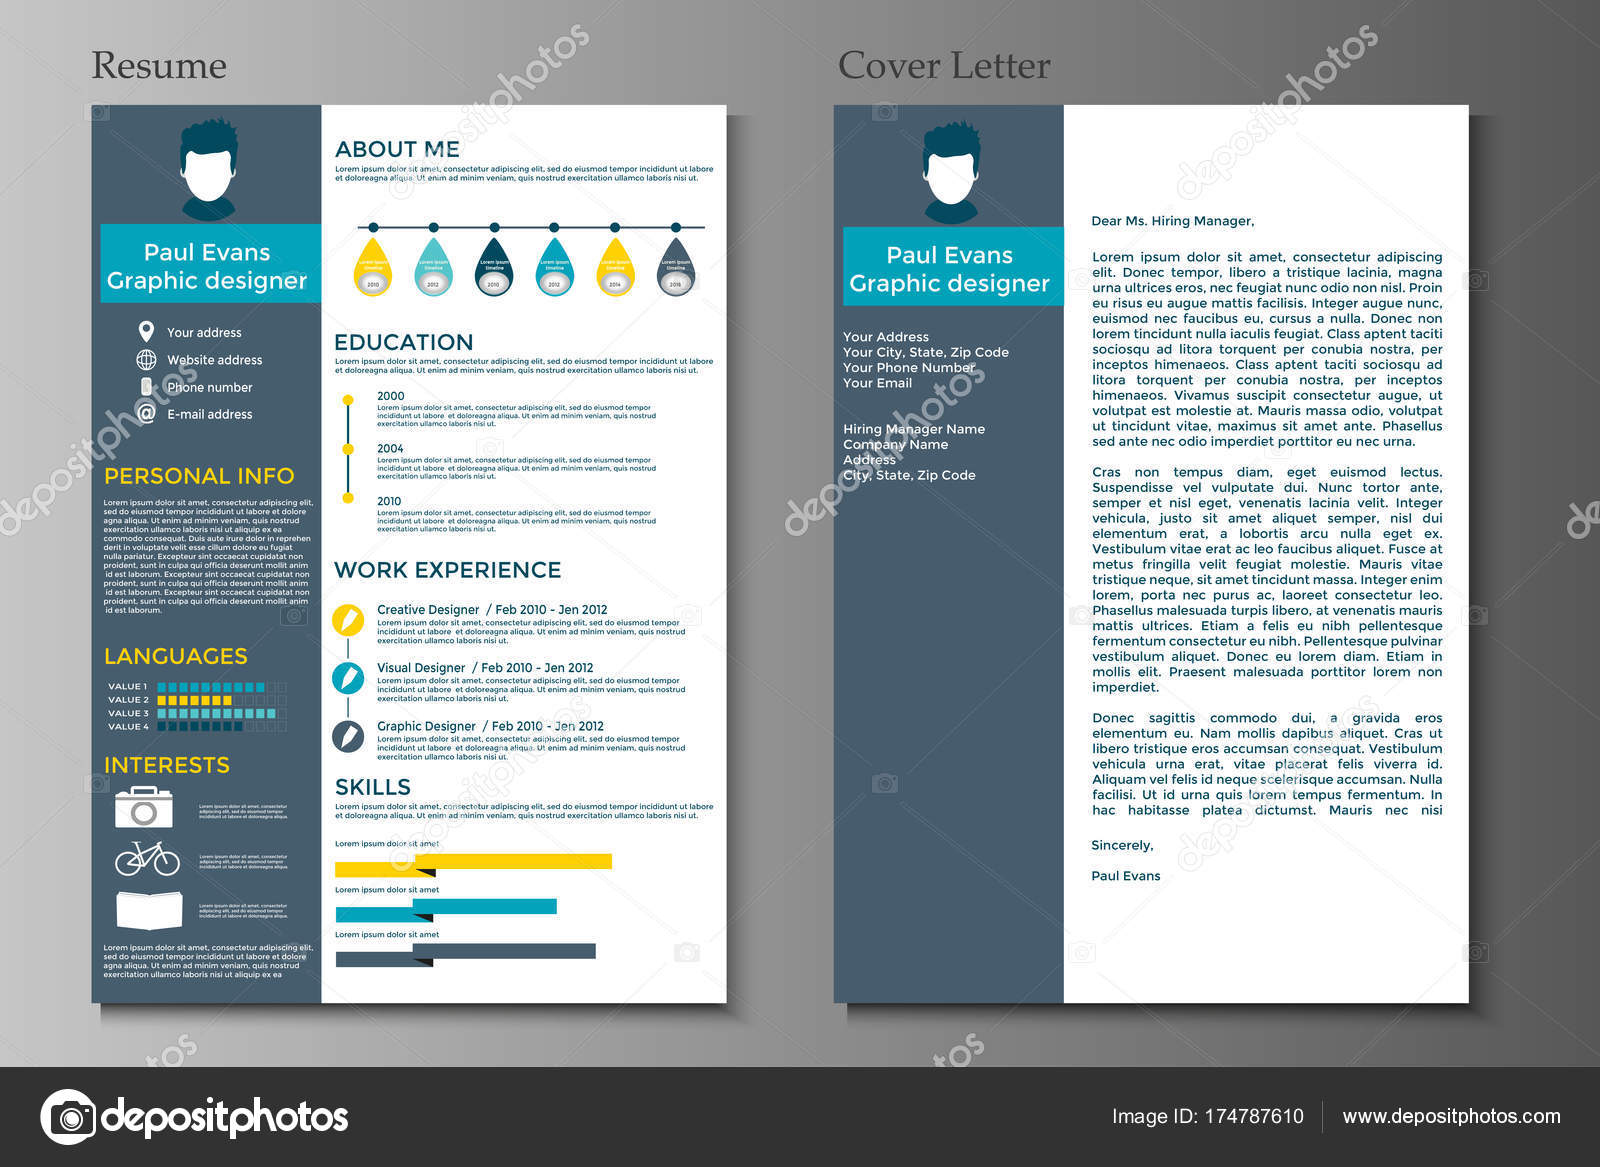 resume cover letter flat style design grey background set